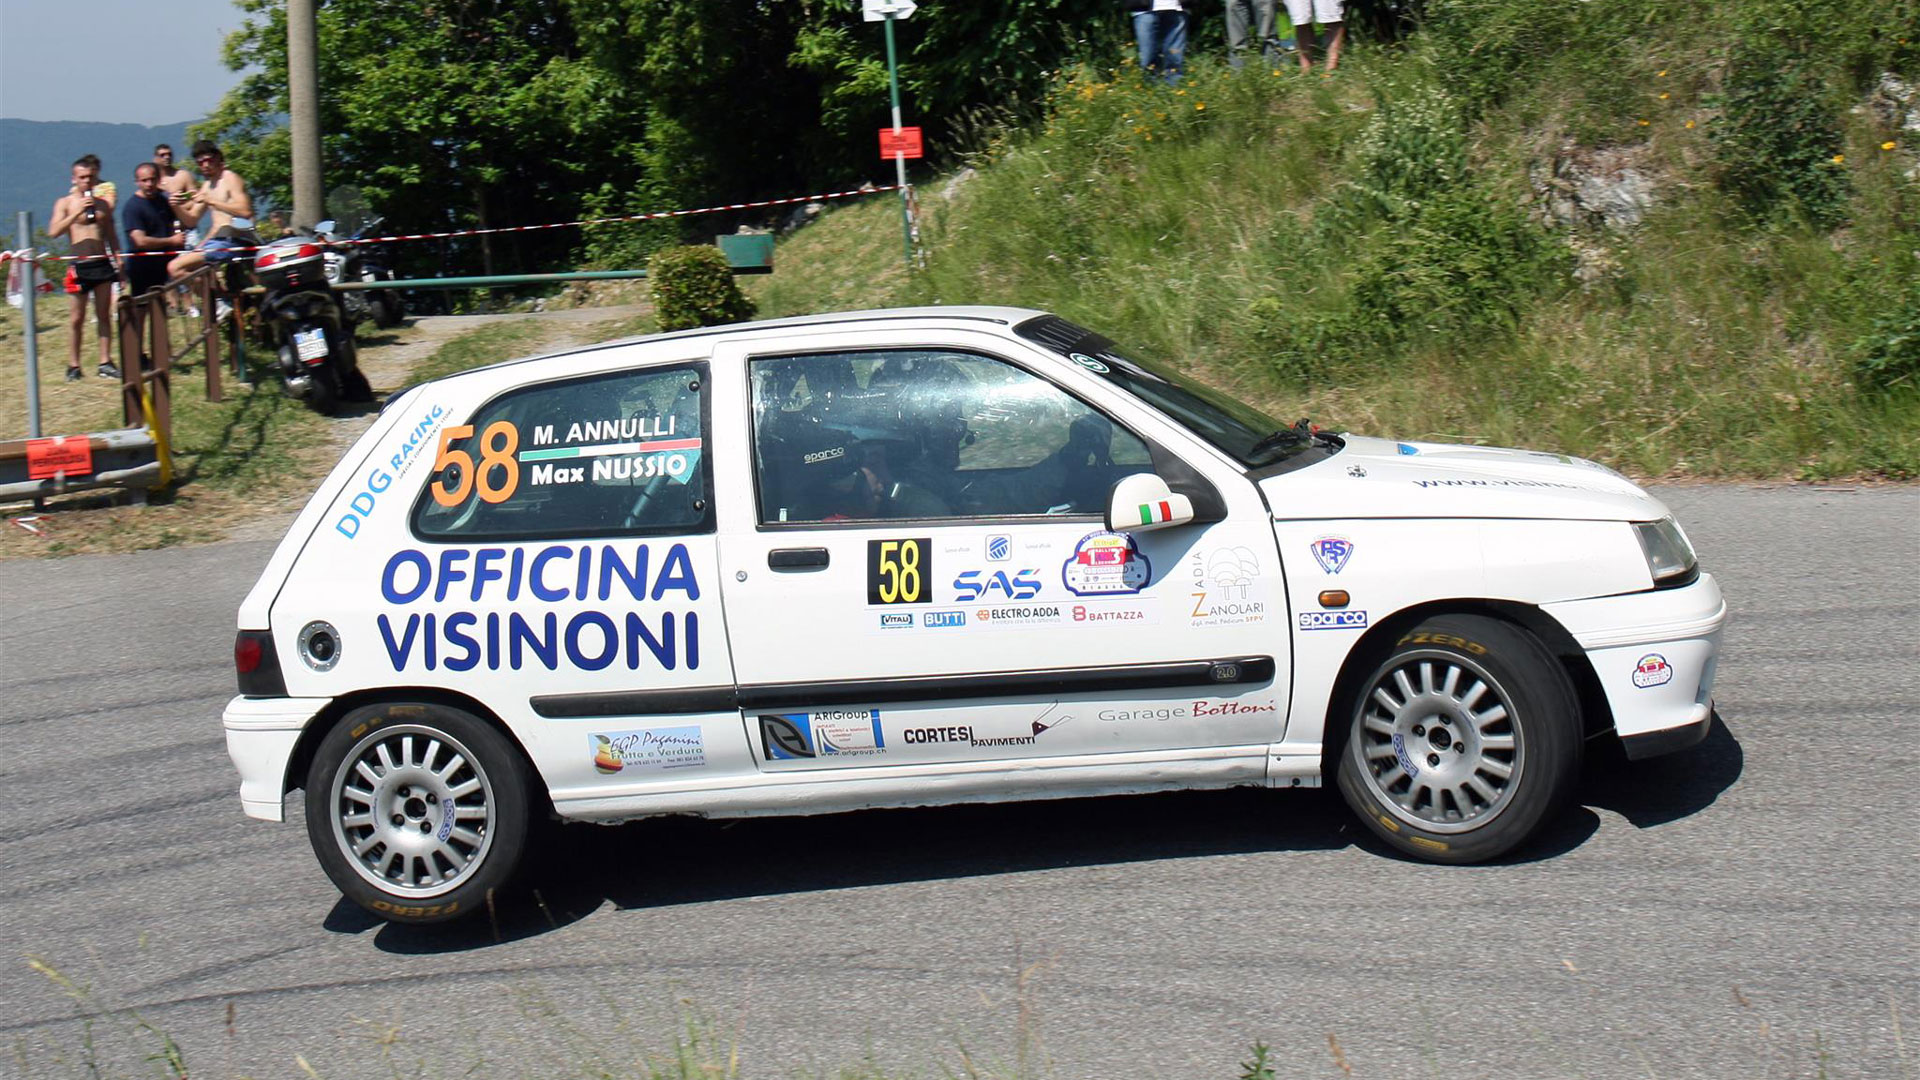 Max Nussio Rally